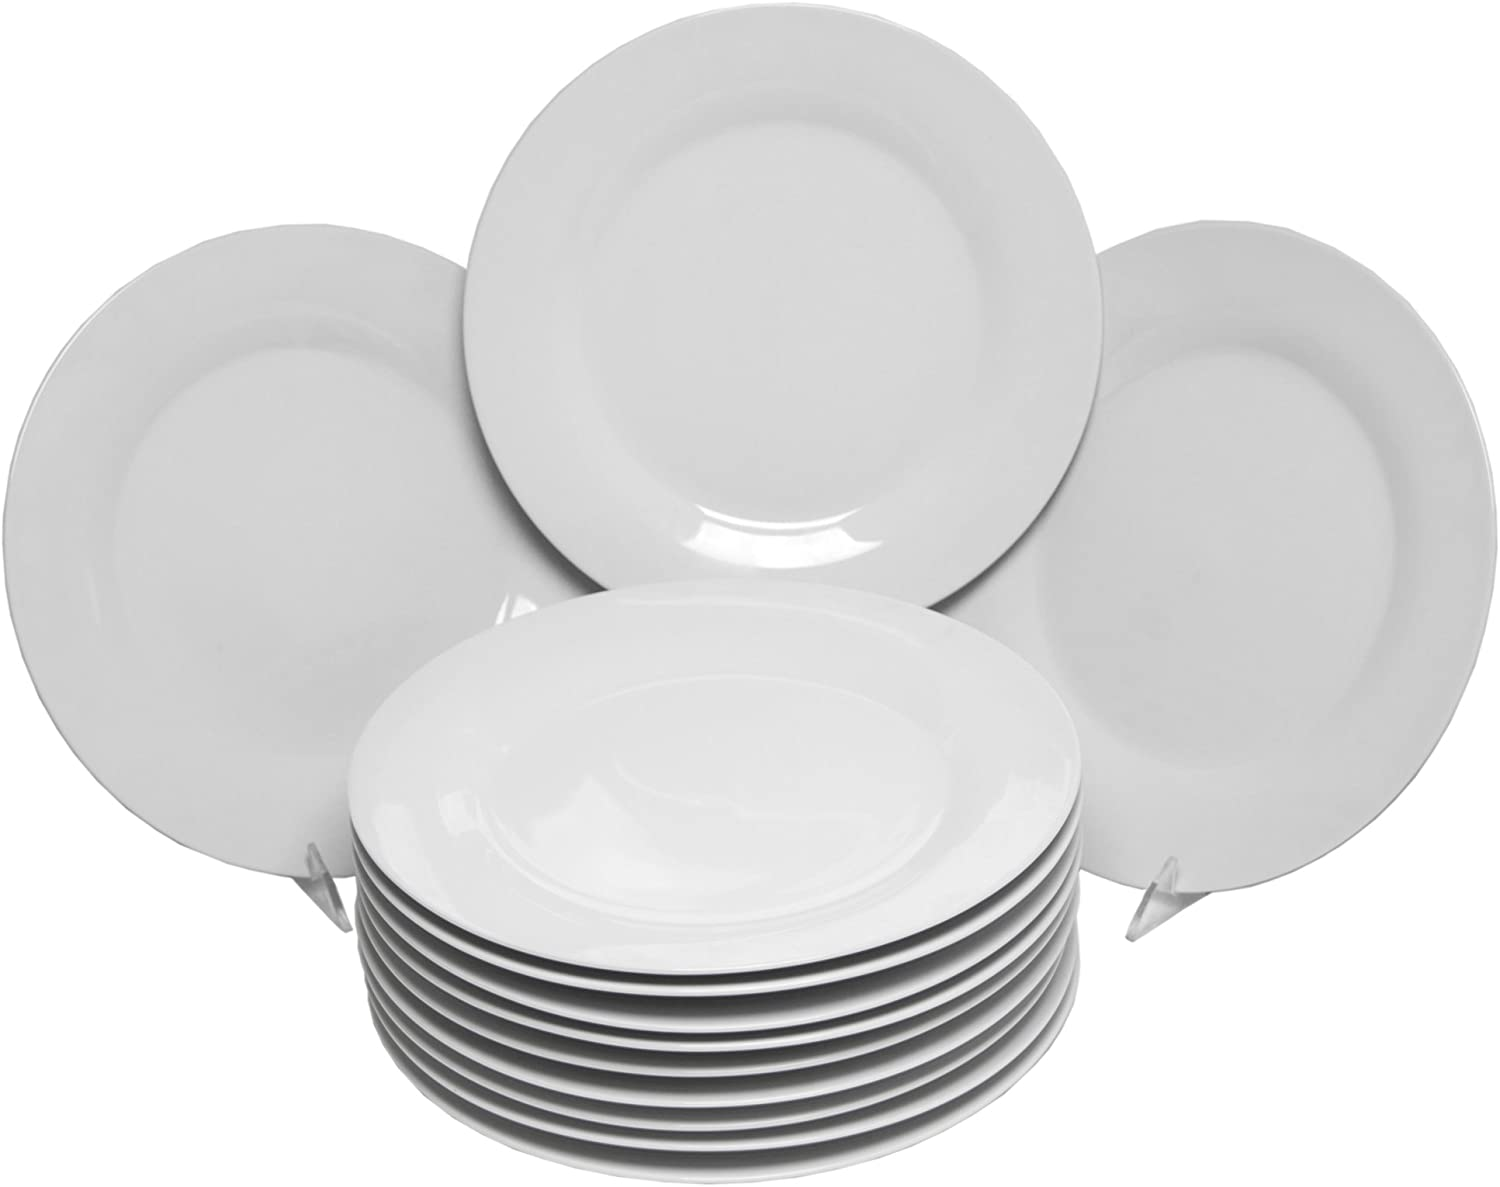 10 Strawberry Street Catering 10.5 Inch Dinner Plate Set